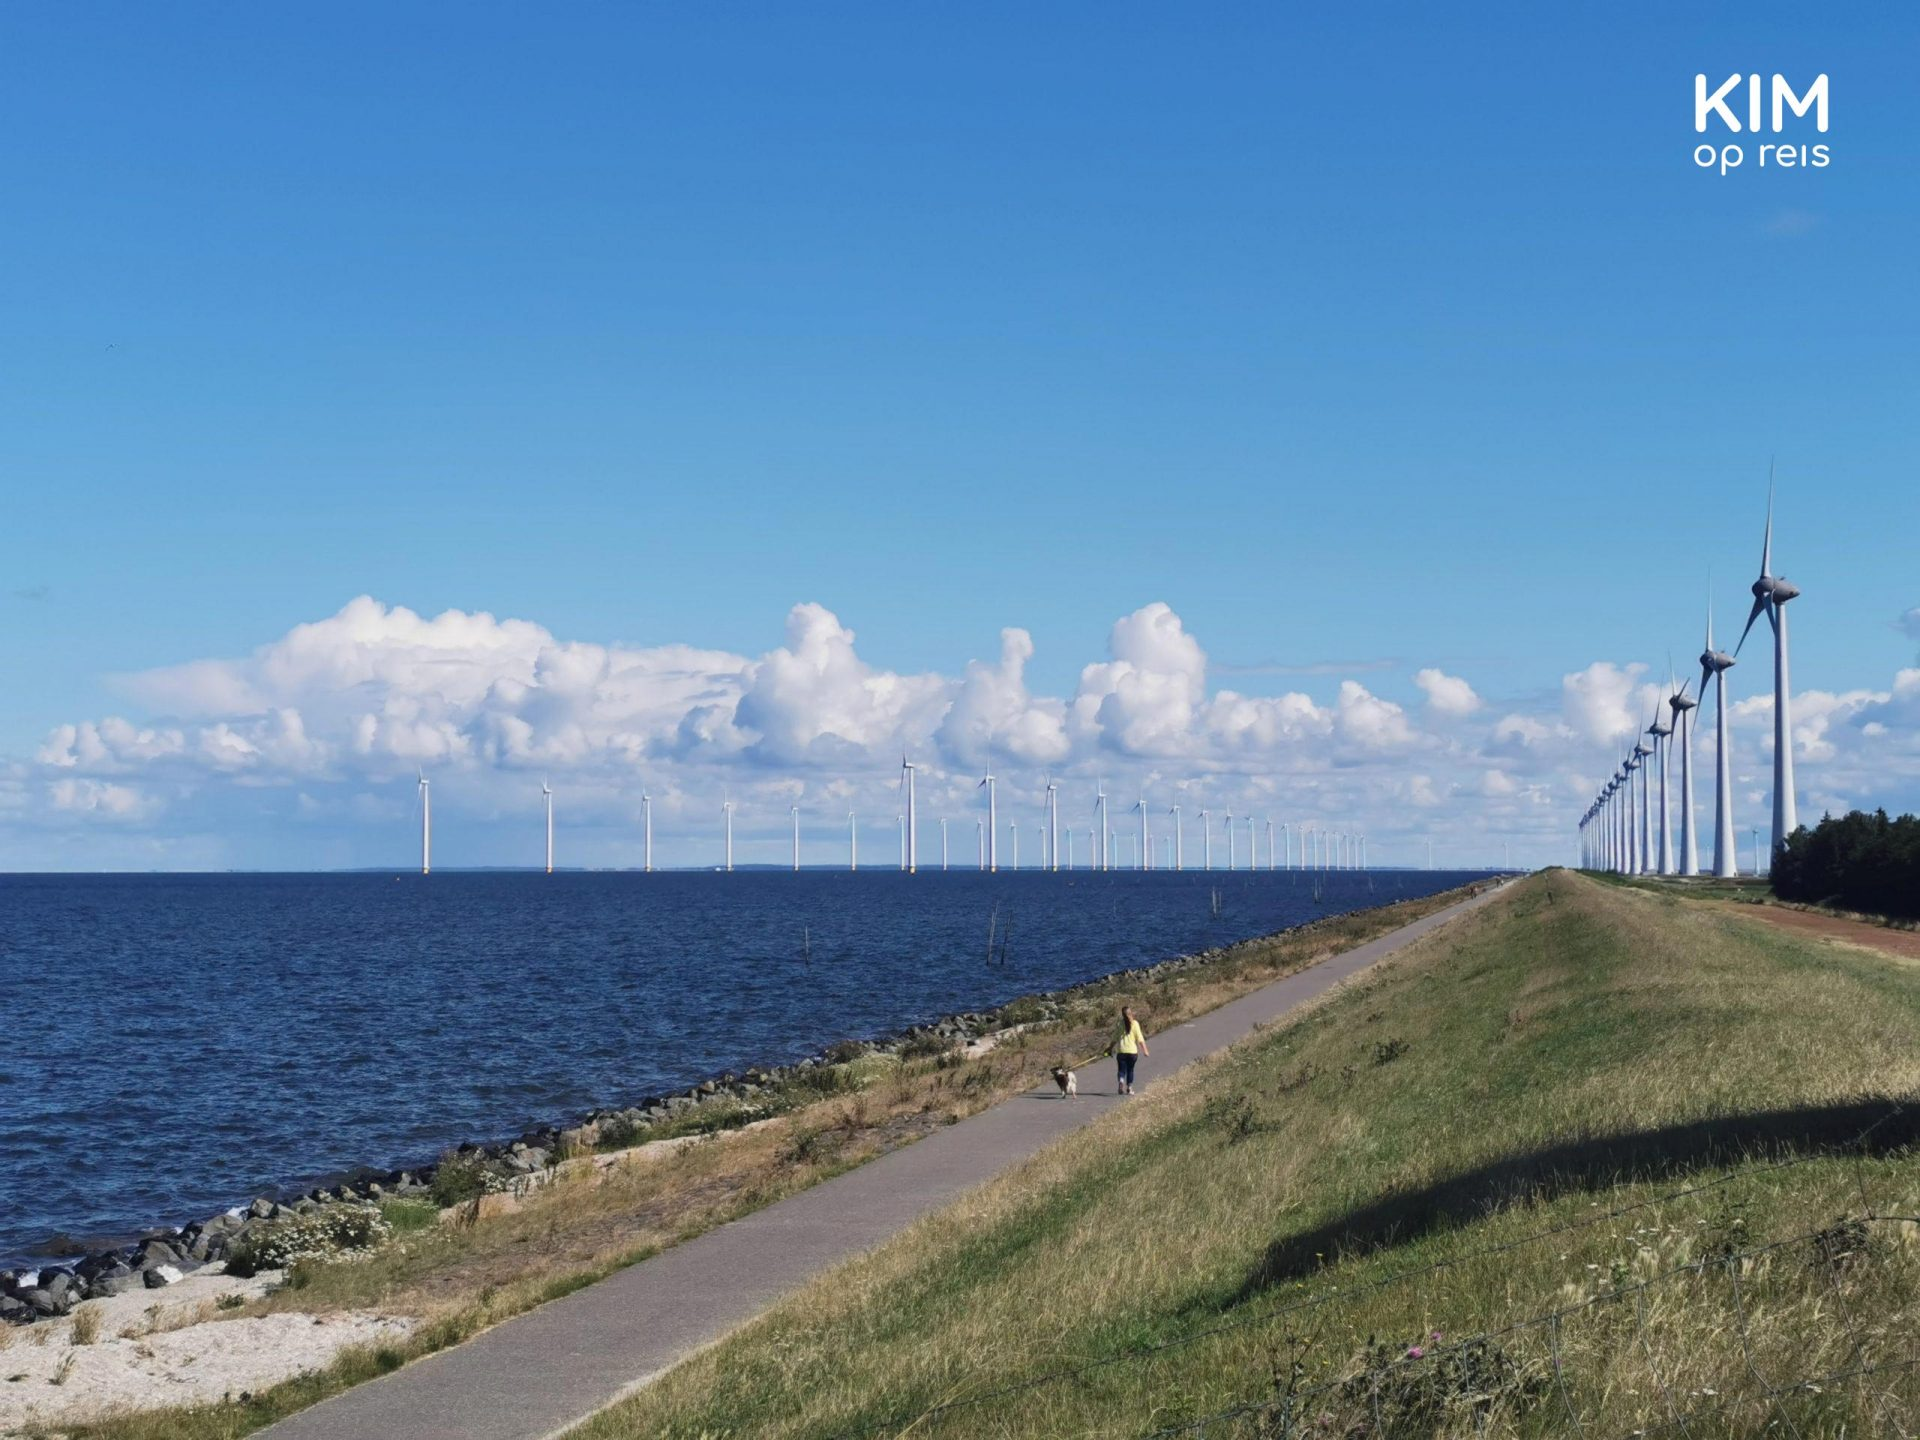 Urk windmills - walking path along the water with double rows of windmills in the distance